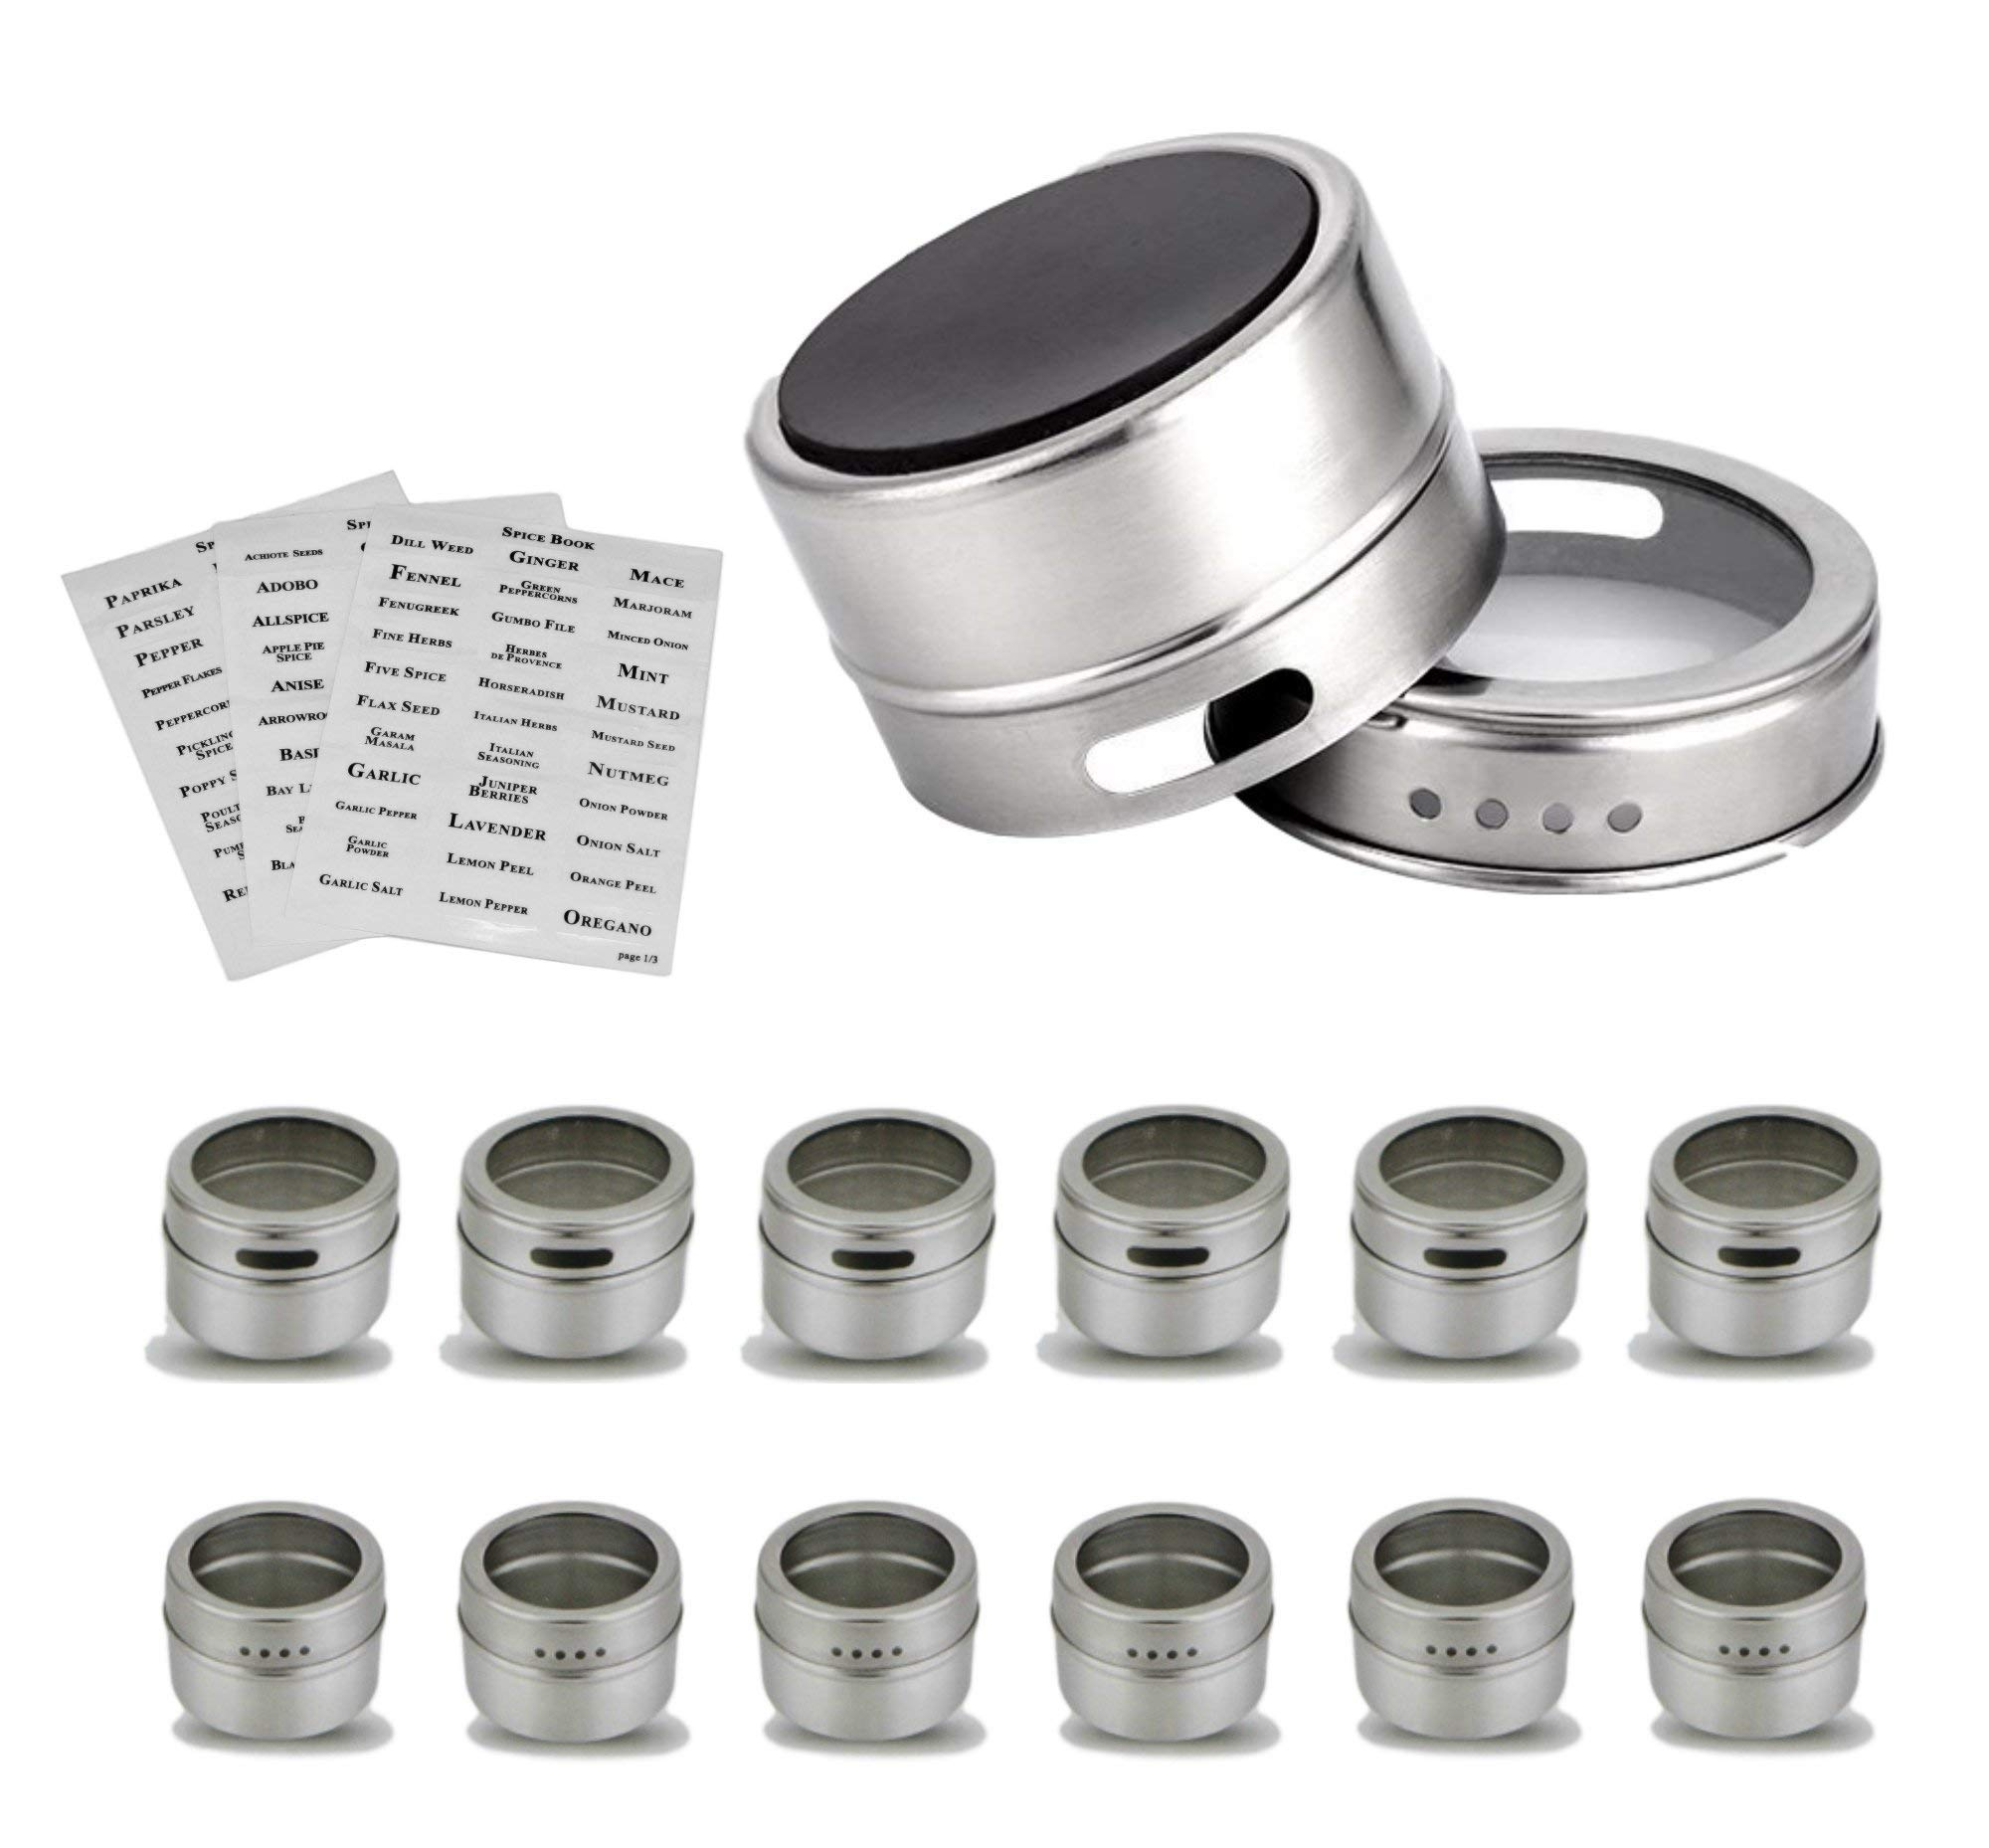 Citrus Pantry 12 Magnetic Spice Rack Tins, Herbs & Spices Containers for Refrigerator, Grills, or Metal Walls, Strongest Stainless Steel Magnet Canisters & Tightly-Sealed Shaker Lids